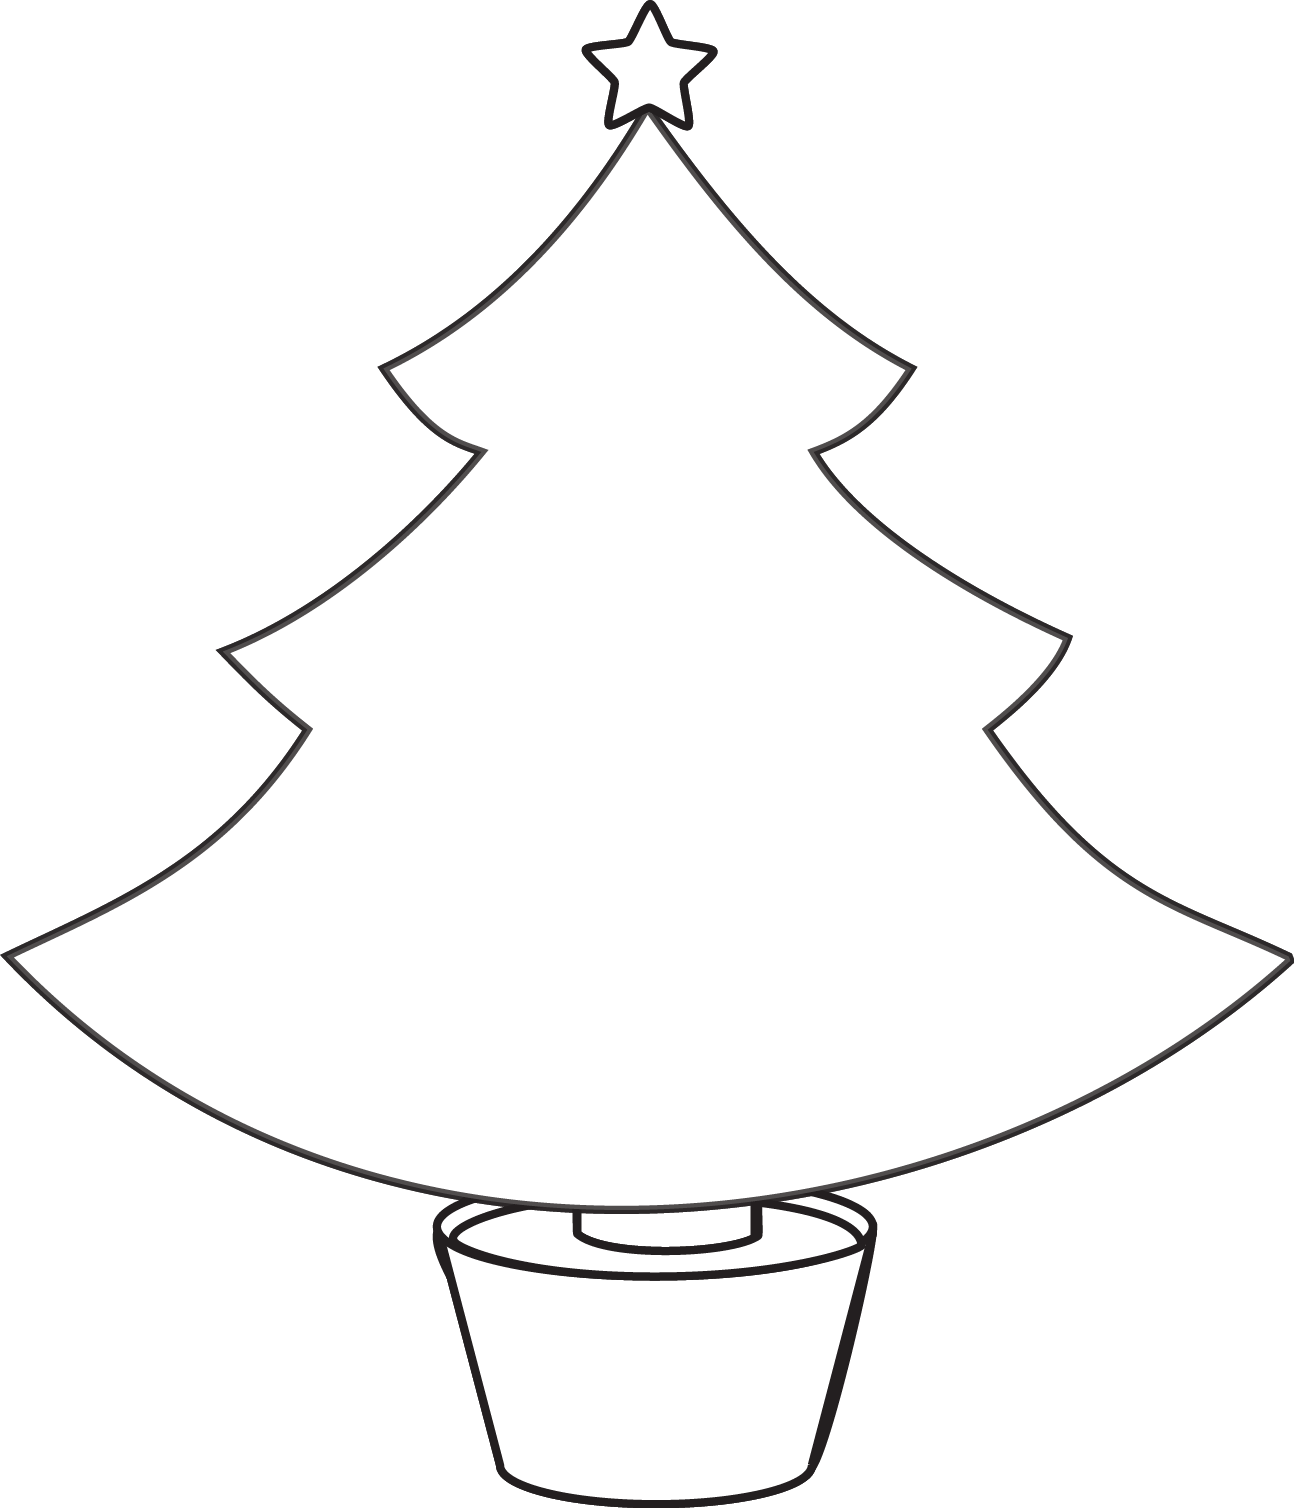 1294x1508 Drawn Christmas Ornaments Simple